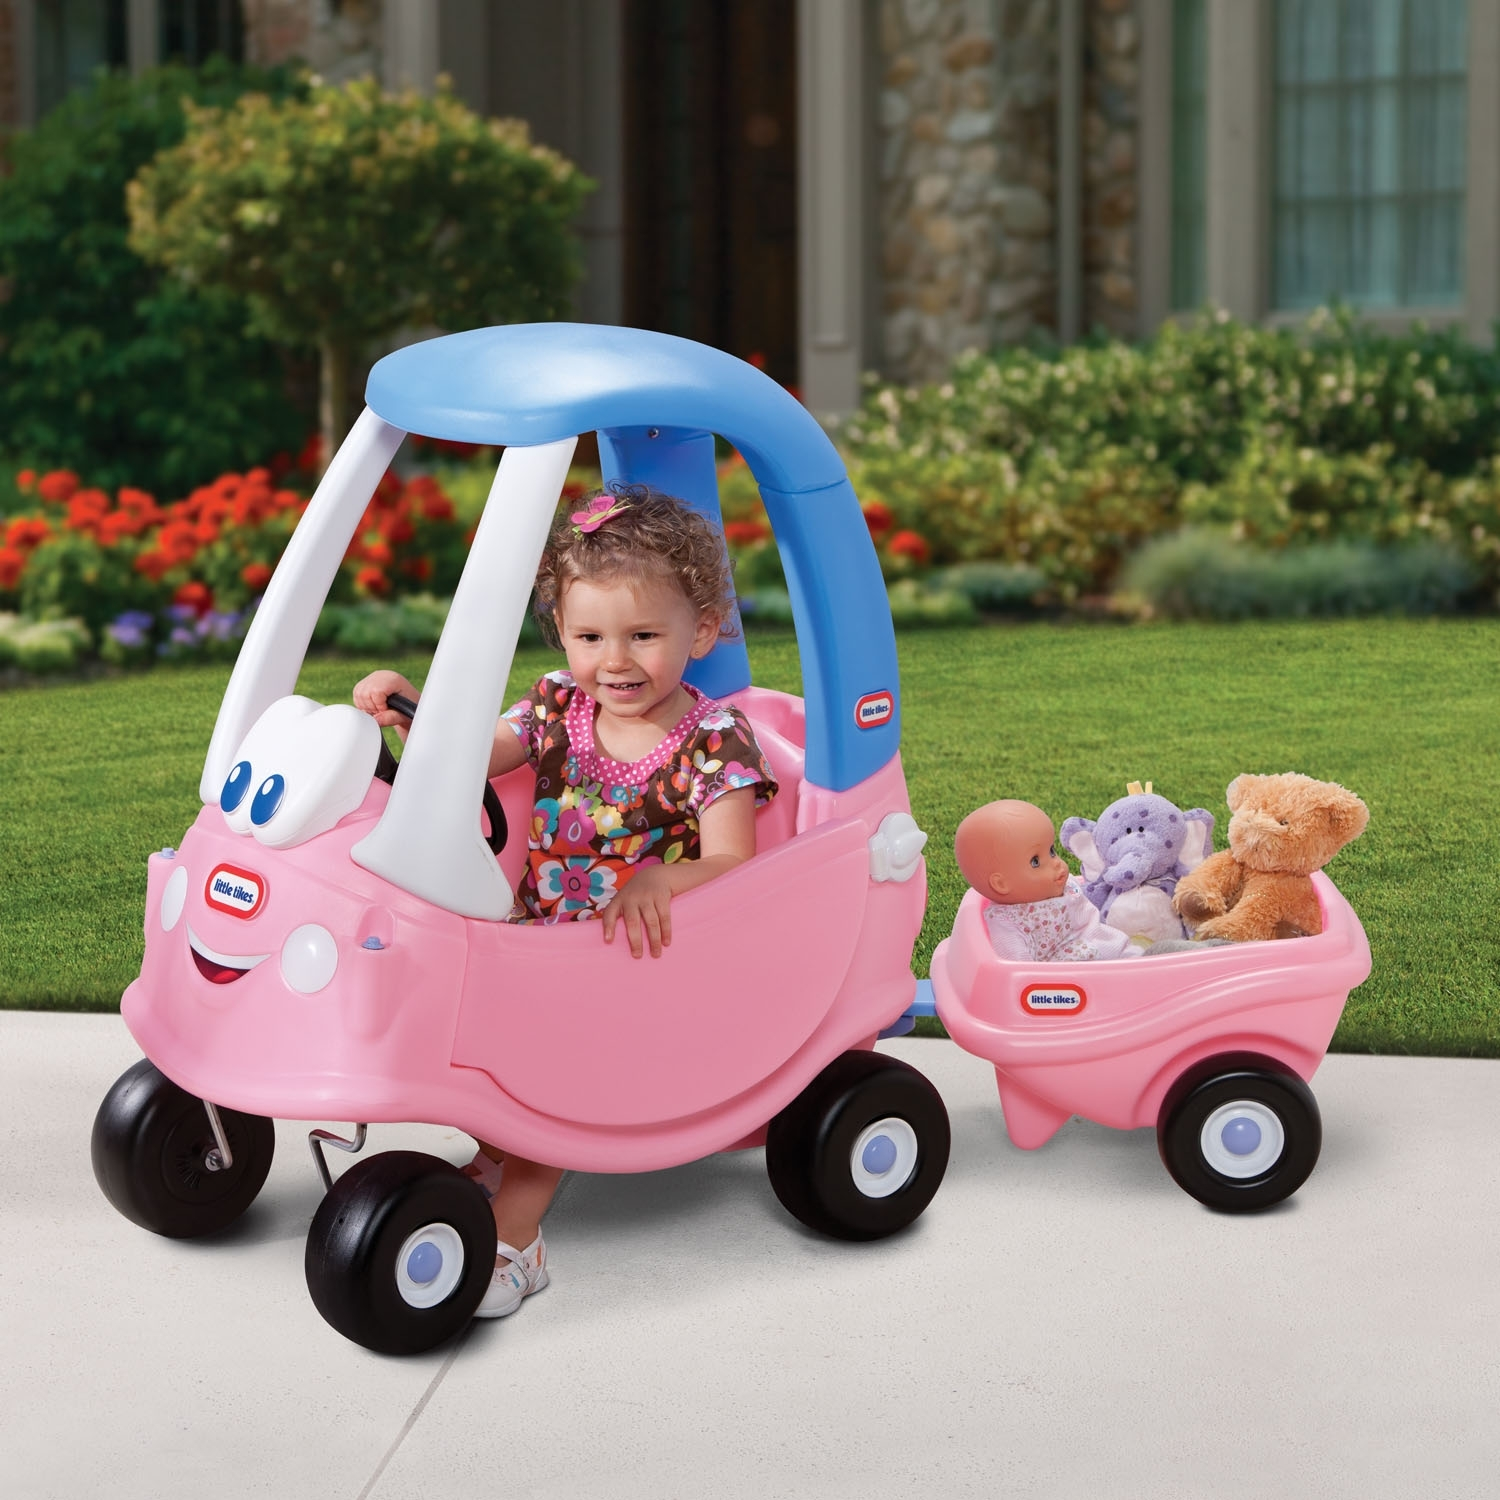 Cozy Coupe Trailer Princess Toy At Mighty Ape Australia